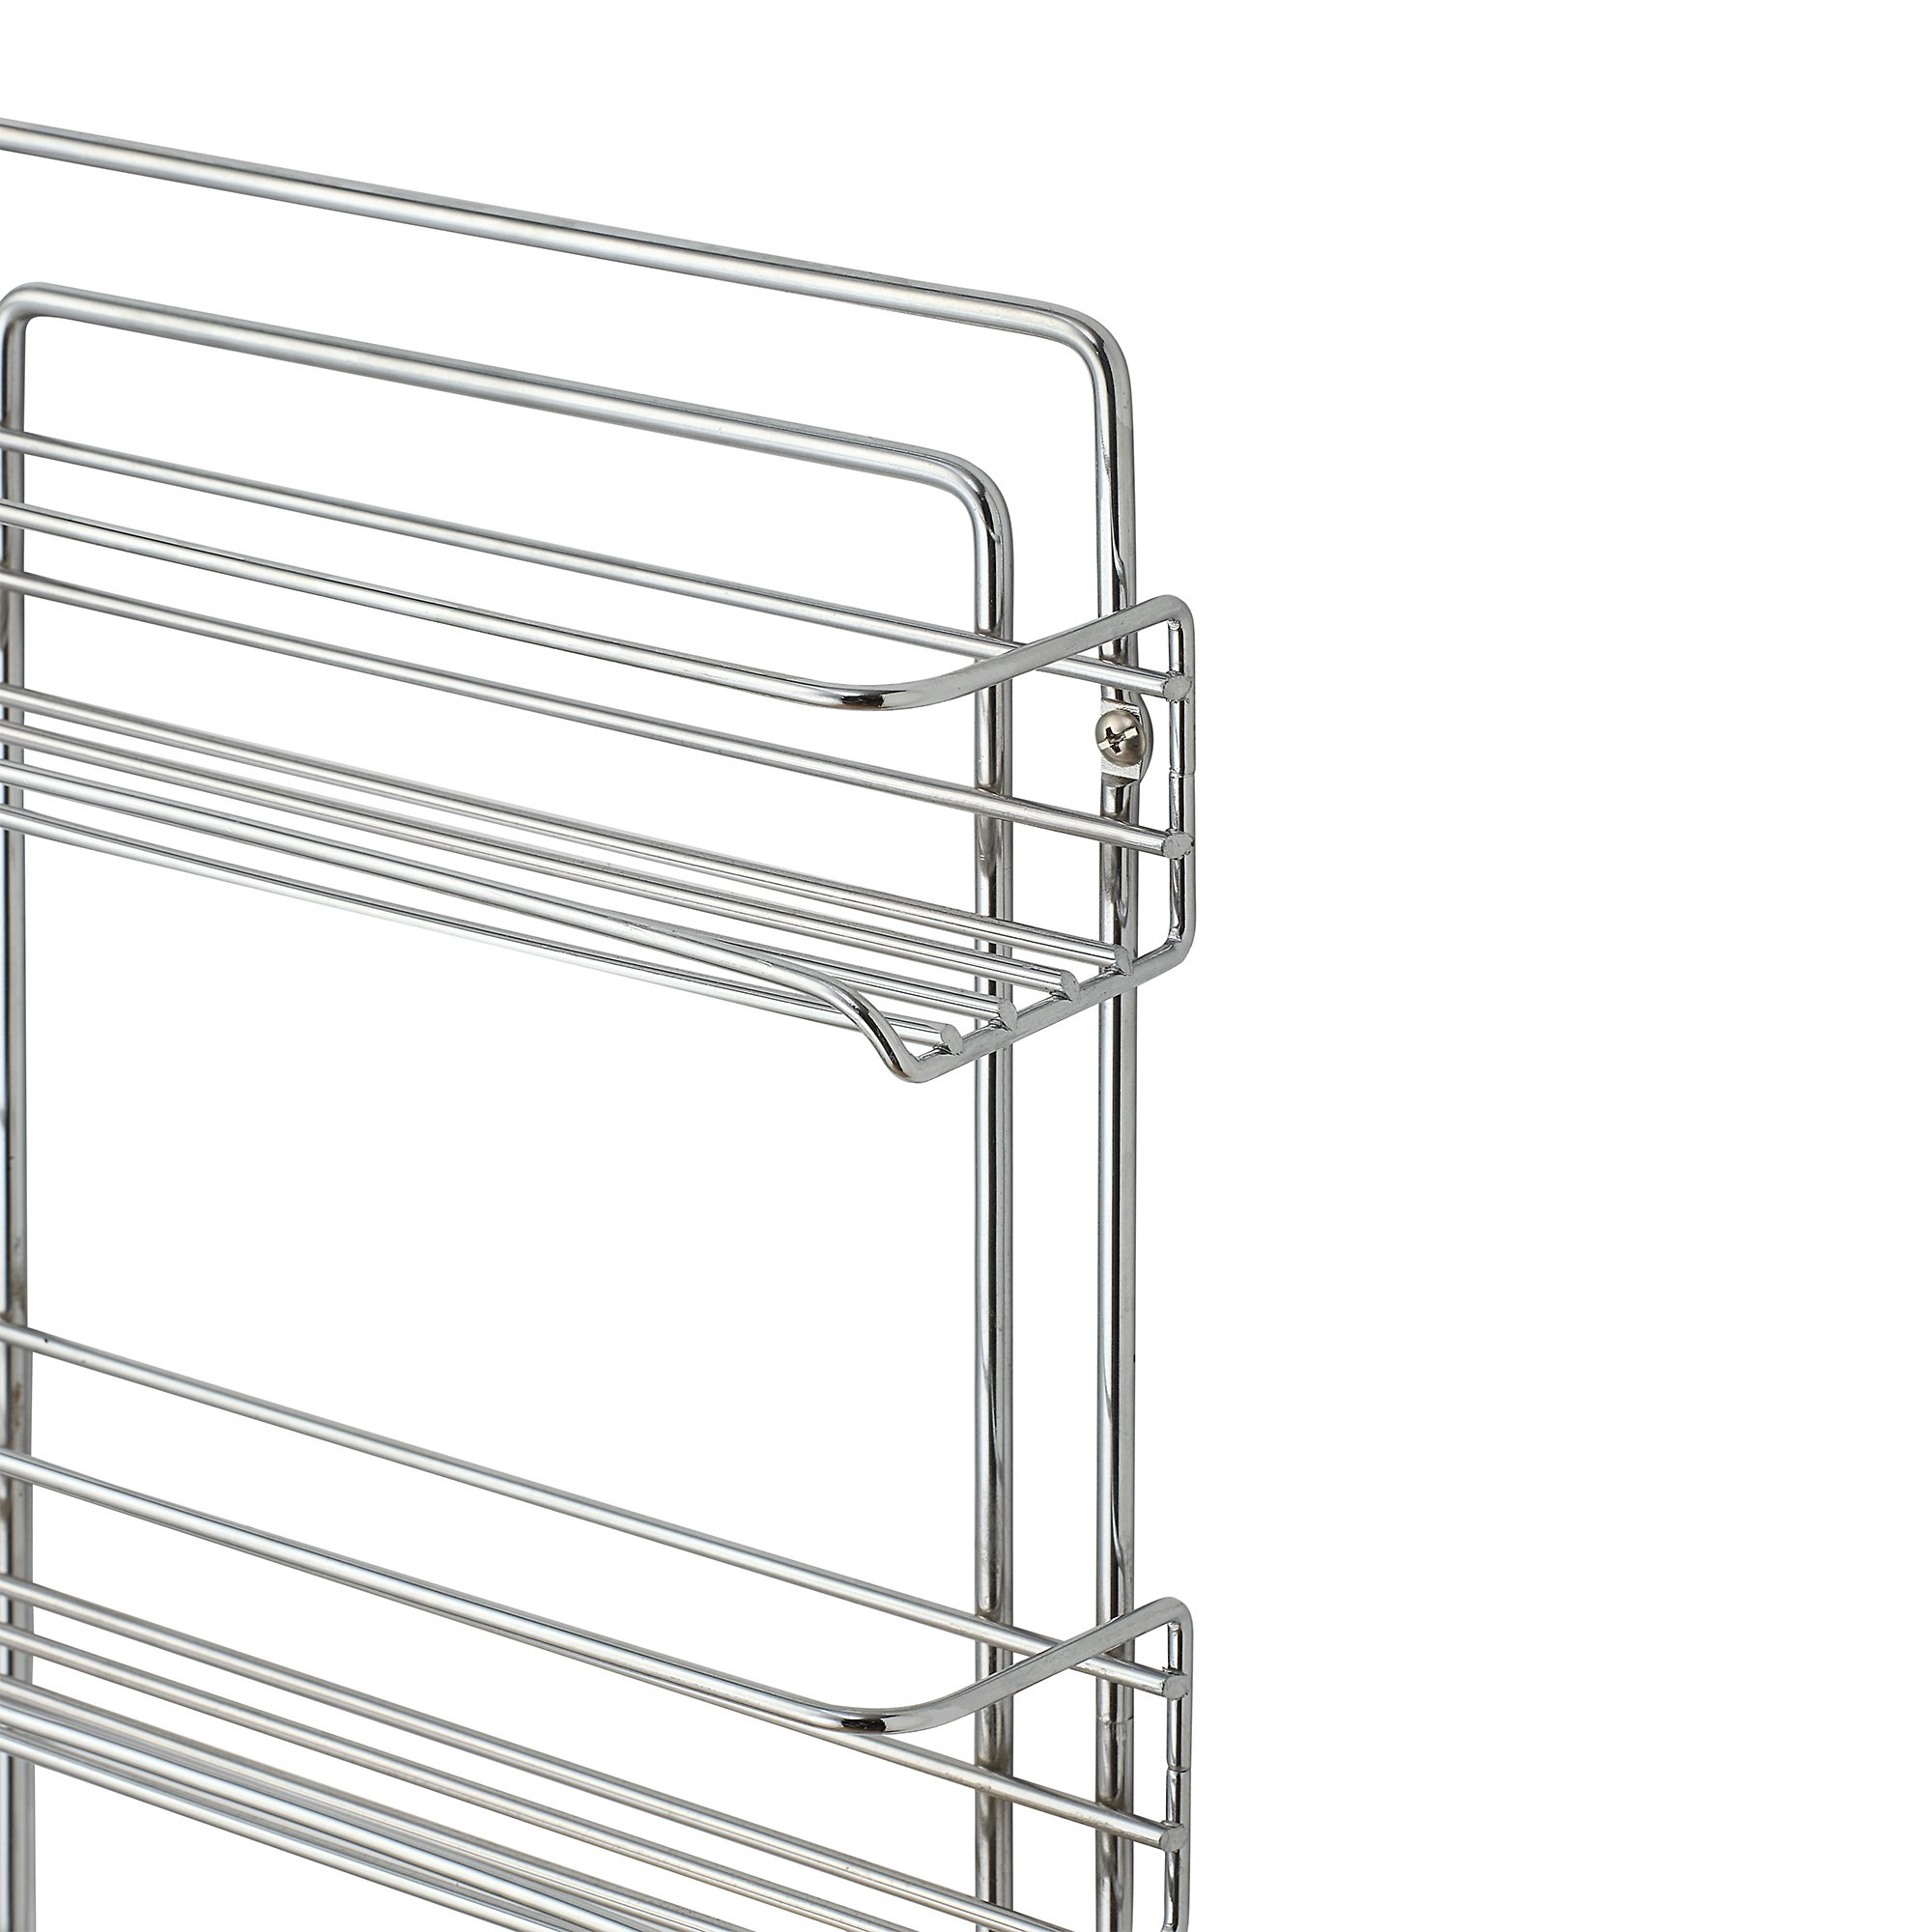 Organize It All 3-Tier Wall-Mounted Spice Rack (Chrome) by Organize It All (Image #4)